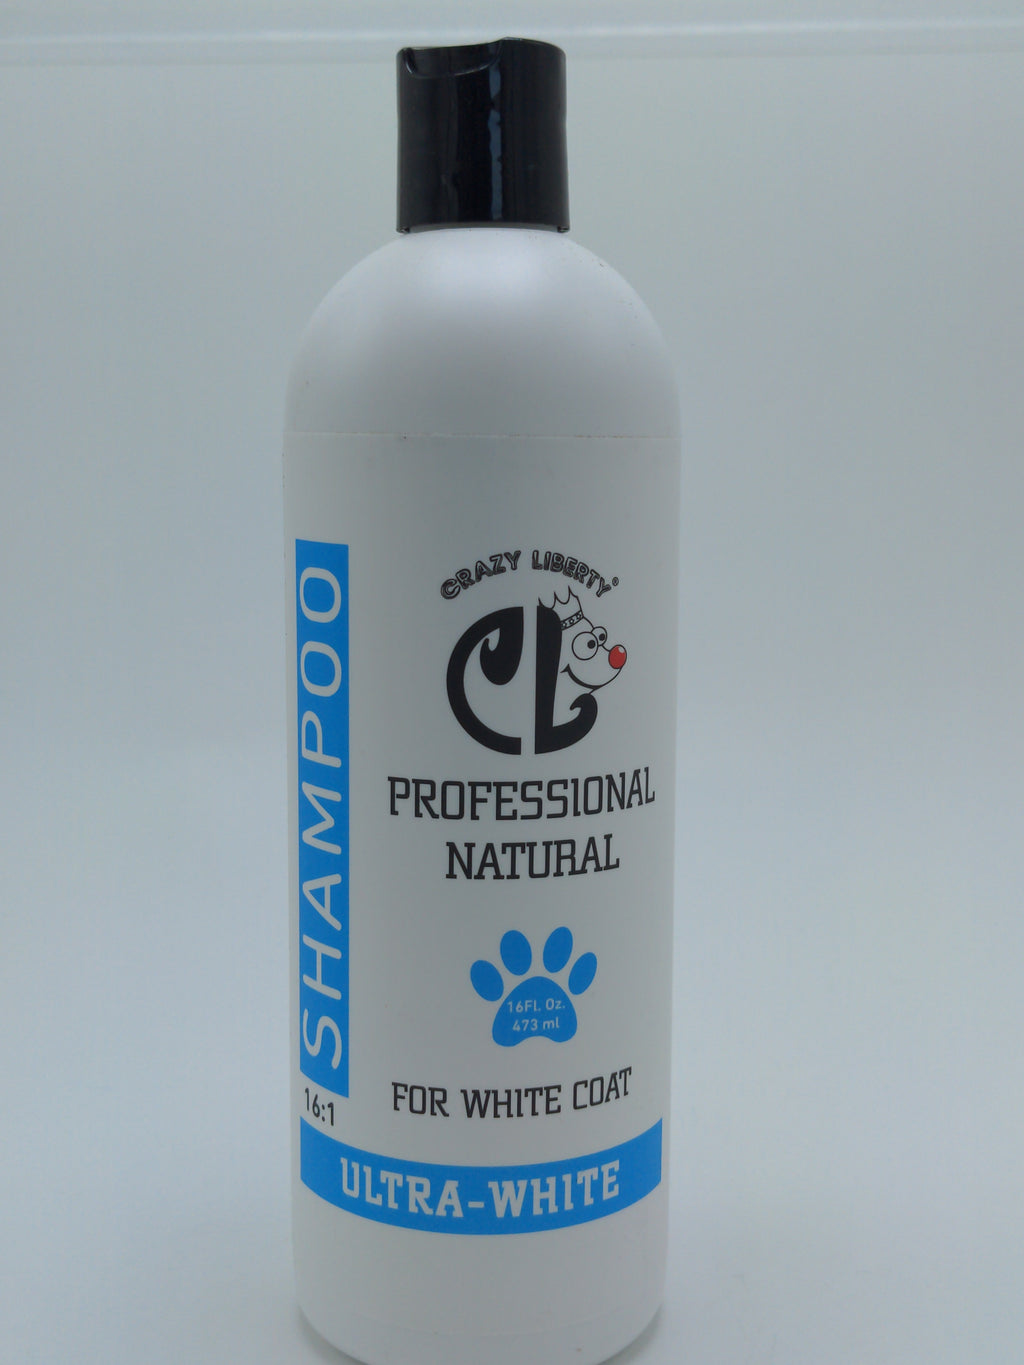 Crazy Liberty Ultra White shampoo